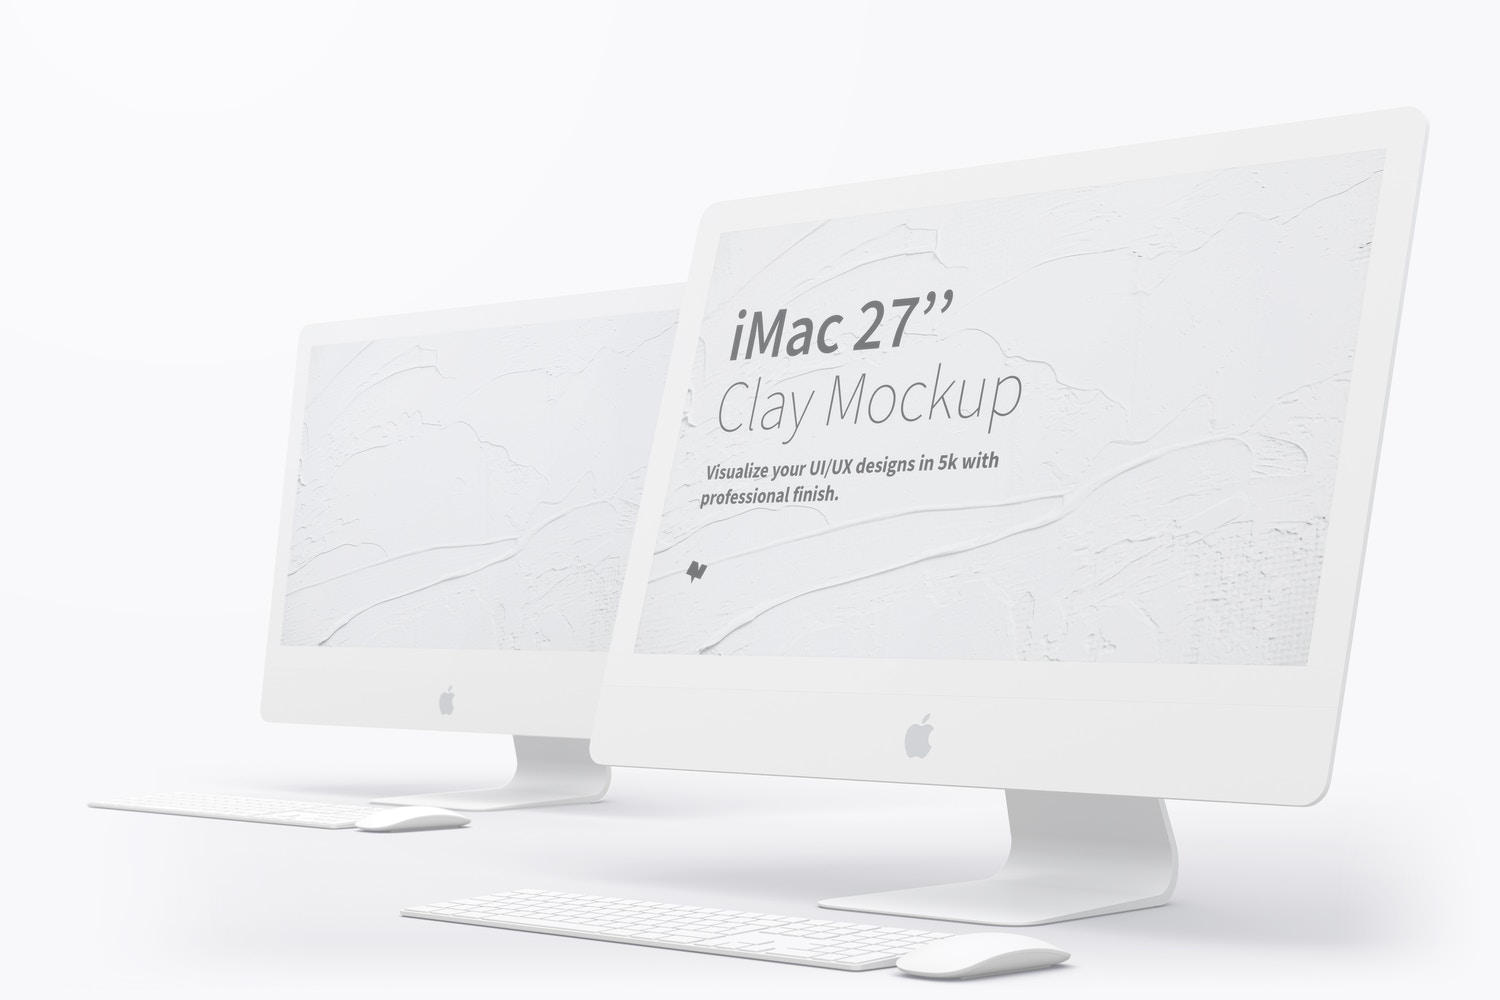 "Clay iMac 27"" Mockup 03 by Original Mockups on Original Mockups"